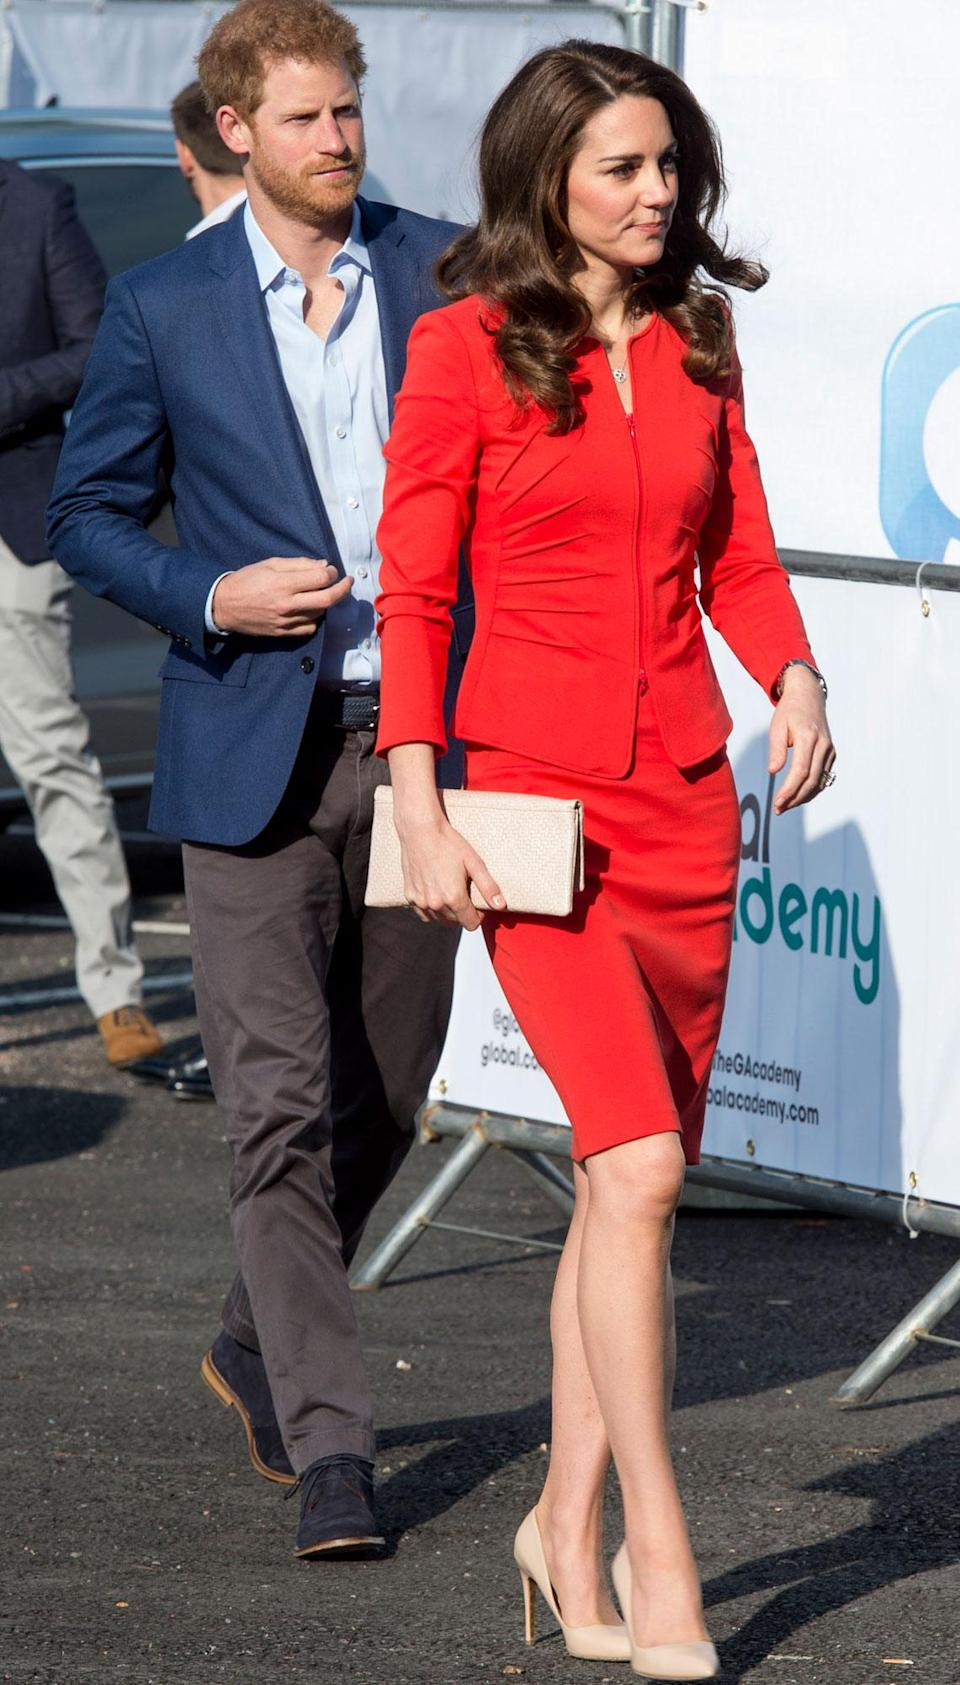 """<p><strong>When:</strong> April 20, 2017 <strong>Where:</strong> Meeting students at the Global Academy in Hayes, west London <strong>Wearing:</strong> Armani Collezioni fiery red suit <strong>Get the Look:</strong> DVF Long-Sleeve A-Line Wrap Dress, $239; <a href=""""http://www.gopjn.com/t/8-8896-131940-82634?sid=POROYALSKateSpringStyleMM&url=https%3A%2F%2Fwww.dvf.com%2Flong-sleeve-a-line-wrap-dress%2F10726DVF.html%3Fdwvar_10726DVF_size%3D12%26dwvar_10726DVF_color%3DBRIRE%26gdffi%3D3d633cebe7ee4ed1bb4fe56c4a52509b%26gdfms%3D28A58DACAC0043DEA3EE71064EAC00C8%26gclid%3DEAIaIQobChMImq3A6Nbl2QIVDpt-Ch2amwlgEAYYASABEgJsAfD_BwE%26gclsrc%3Daw.ds"""" rel=""""nofollow noopener"""" target=""""_blank"""" data-ylk=""""slk:dvf.com"""" class=""""link rapid-noclick-resp"""">dvf.com</a> Lauren Ralph Lauren Keyhole Jersey Dress, $87; <a href=""""https://click.linksynergy.com/fs-bin/click?id=93xLBvPhAeE&subid=0&offerid=465536.1&type=10&tmpid=2425&RD_PARM1=https%3A%2F%2Fwww.bloomingdales.com%2Fshop%2Fproduct%2Flauren-ralph-lauren-keyhole-jersey-dress%3FID%3D2795290%2526CategoryID%3D2910&u1=POROYALSKateSpringStyleMM"""" rel=""""nofollow noopener"""" target=""""_blank"""" data-ylk=""""slk:bloomingdales.com"""" class=""""link rapid-noclick-resp"""">bloomingdales.com</a> ASOS Long Sleeve Midi Pencil Dress, $60, <a href=""""https://click.linksynergy.com/fs-bin/click?id=93xLBvPhAeE&subid=0&offerid=460292.1&type=10&tmpid=20904&RD_PARM1=http%3A%2F%2Fus.asos.com%2Fasos%2Fasos-long-sleeve-midi-pencil-dress%2Fprd%2F8570245%3Fclr%3Dred%2526SearchQuery%3Dred%2520long%2520sleeve%2520pencil%2520dress%2526gridcolumn%3D1%2526gridrow%3D1%2526gridsize%3D4%2526pge%3D1%2526pgesize%3D72%2526totalstyles%3D26&u1=POROYALSKateSpringStyleMM"""" rel=""""nofollow noopener"""" target=""""_blank"""" data-ylk=""""slk:asos.com"""" class=""""link rapid-noclick-resp"""">asos.com</a> Kasper Crepe One-Button Jacket, $69.99, <a href=""""https://click.linksynergy.com/fs-bin/click?id=93xLBvPhAeE&subid=0&offerid=486467.1&type=10&tmpid=1513&RD_PARM1=https%3A%2F%2Fwww.macys.com%2Fshop%2Fproduct%2Fkasper-crepe-one-butt"""